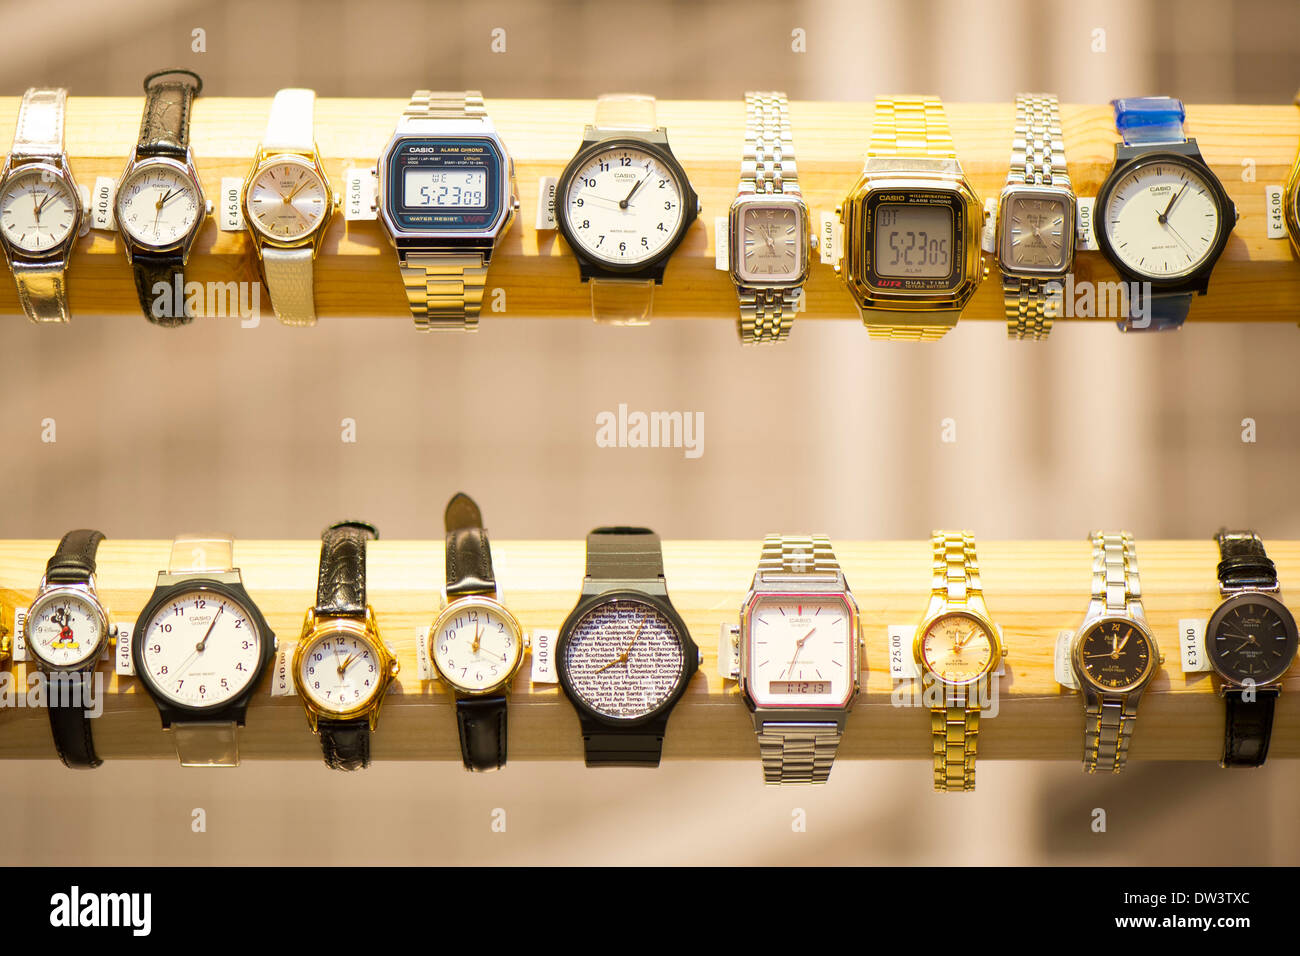 A row of watches for sale in a shop. - Stock Image